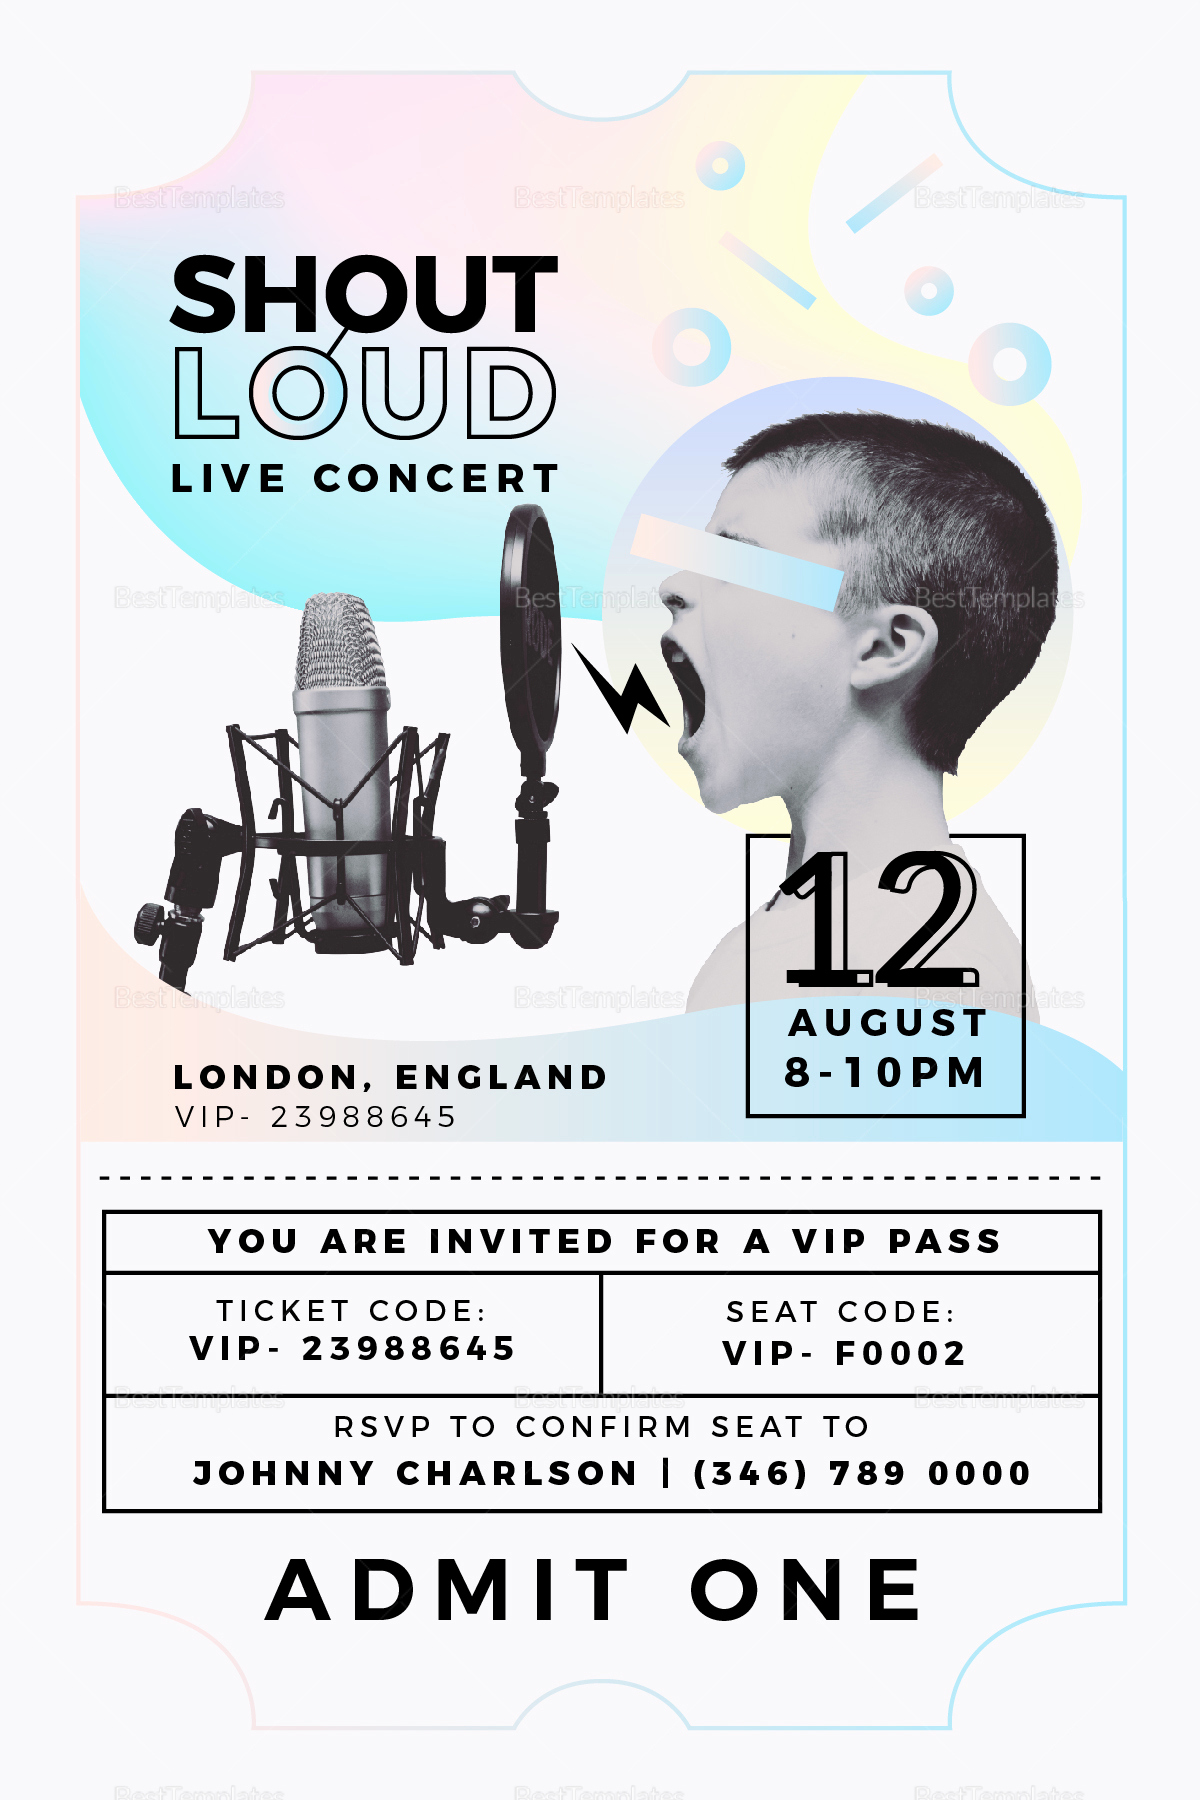 Concert Ticket Invitation Template Free Unique Live Concert Invitation Design Template In Psd Word